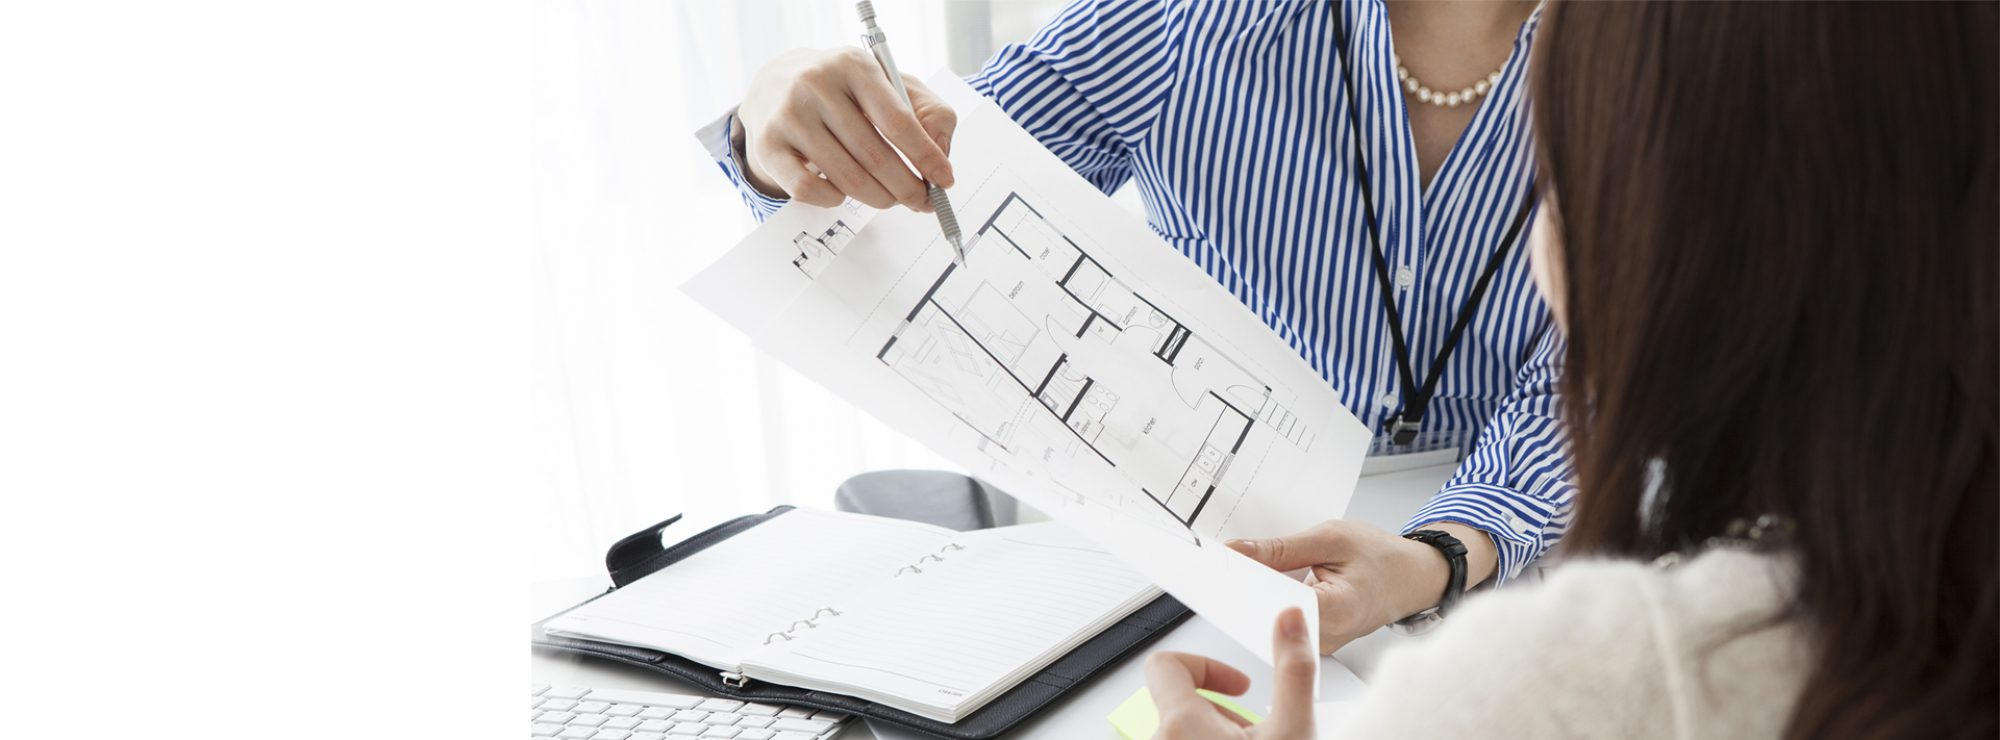 Planning and Designing Your New Home – ConstructionWriters.org